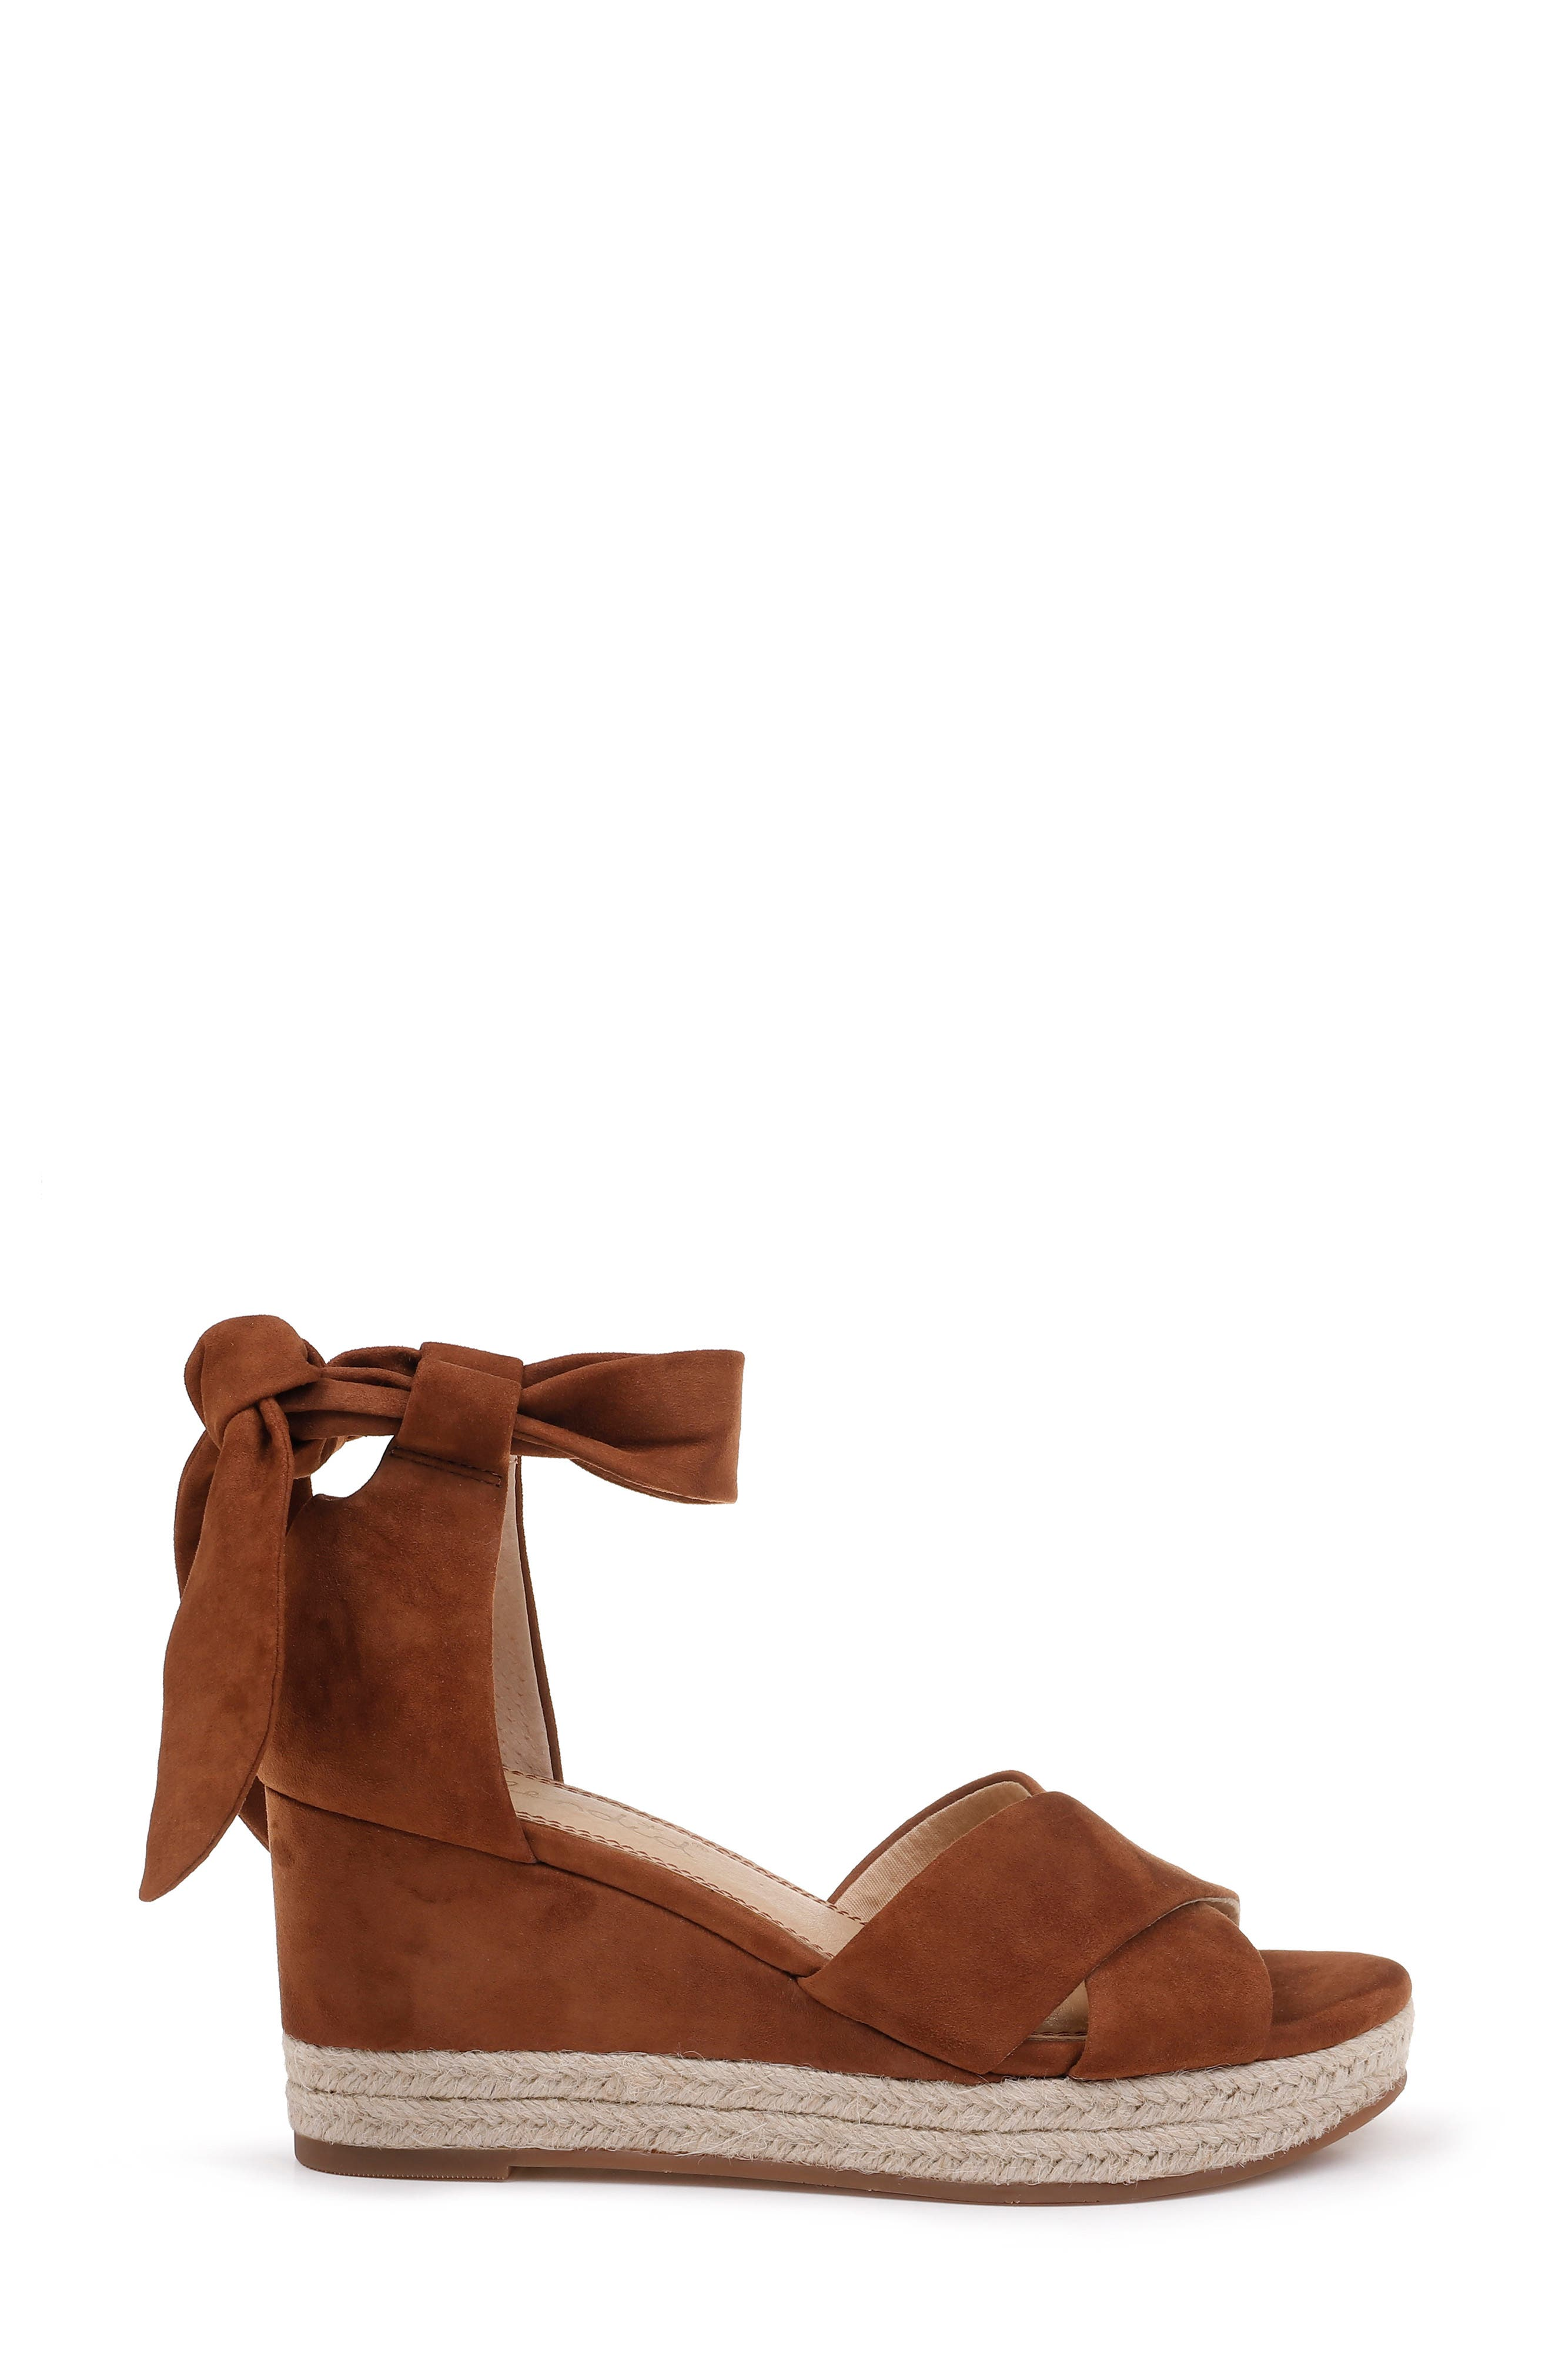 SPLENDID, Terrence Ankle Wrap Wedge Sandal, Alternate thumbnail 3, color, CHESTNUT SUEDE